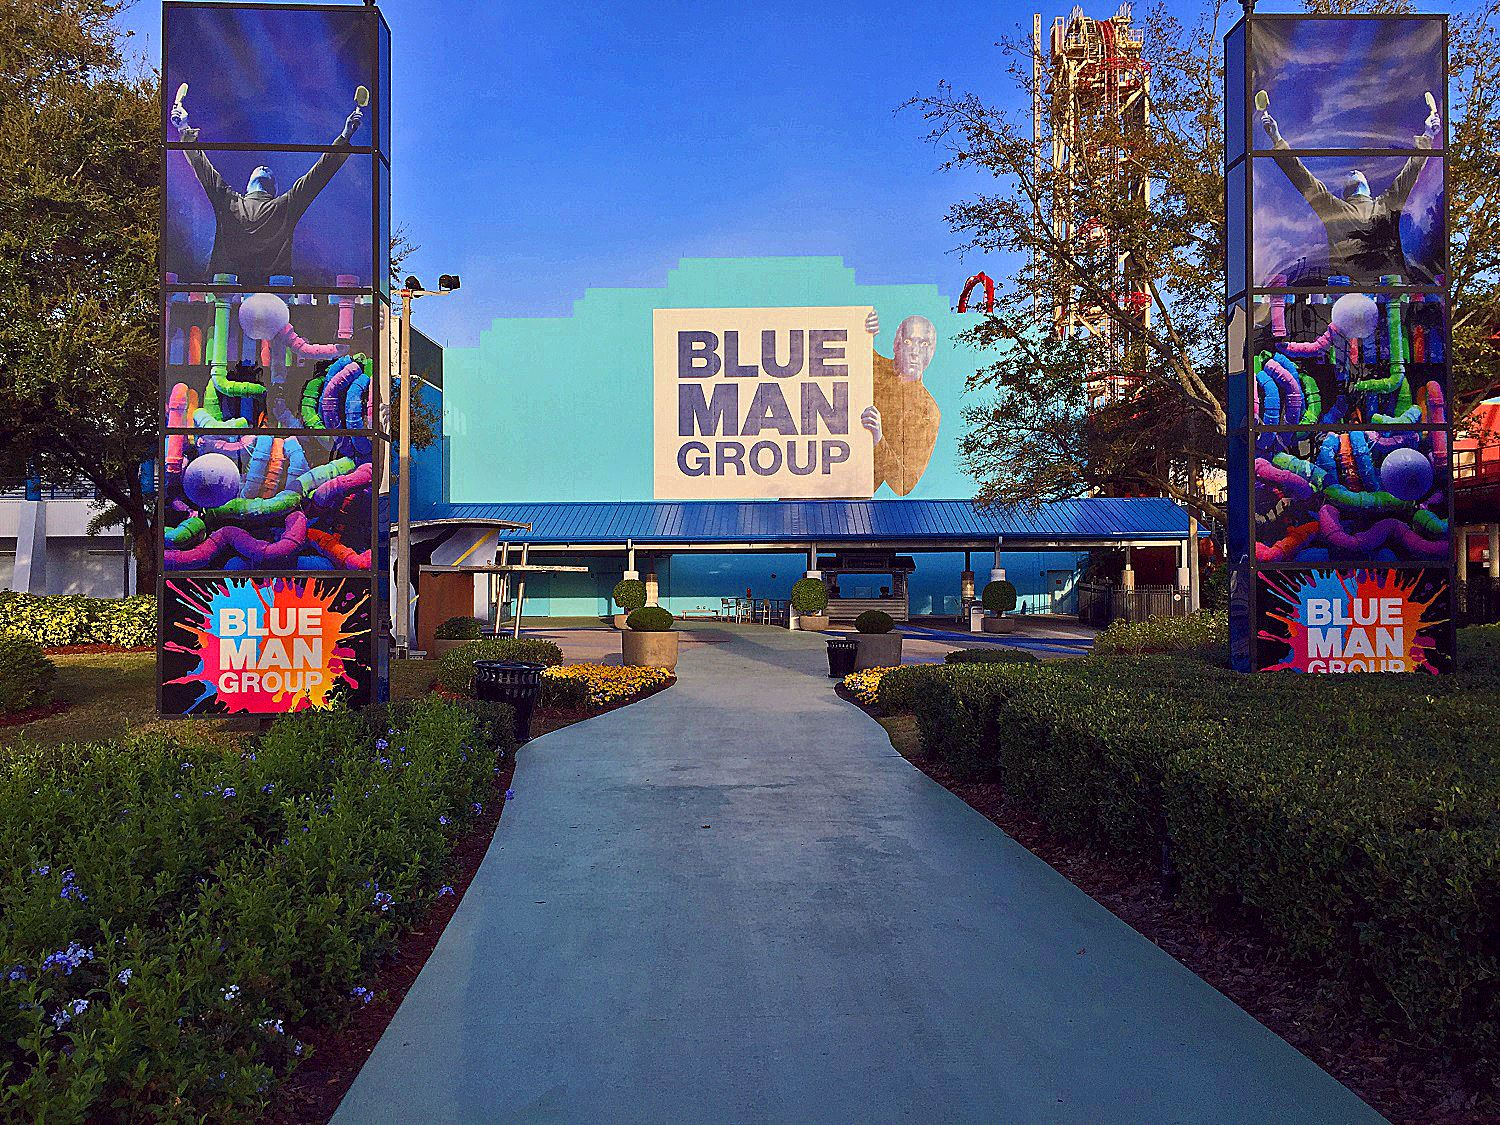 The path leading to the Blue Man Group Theatre.